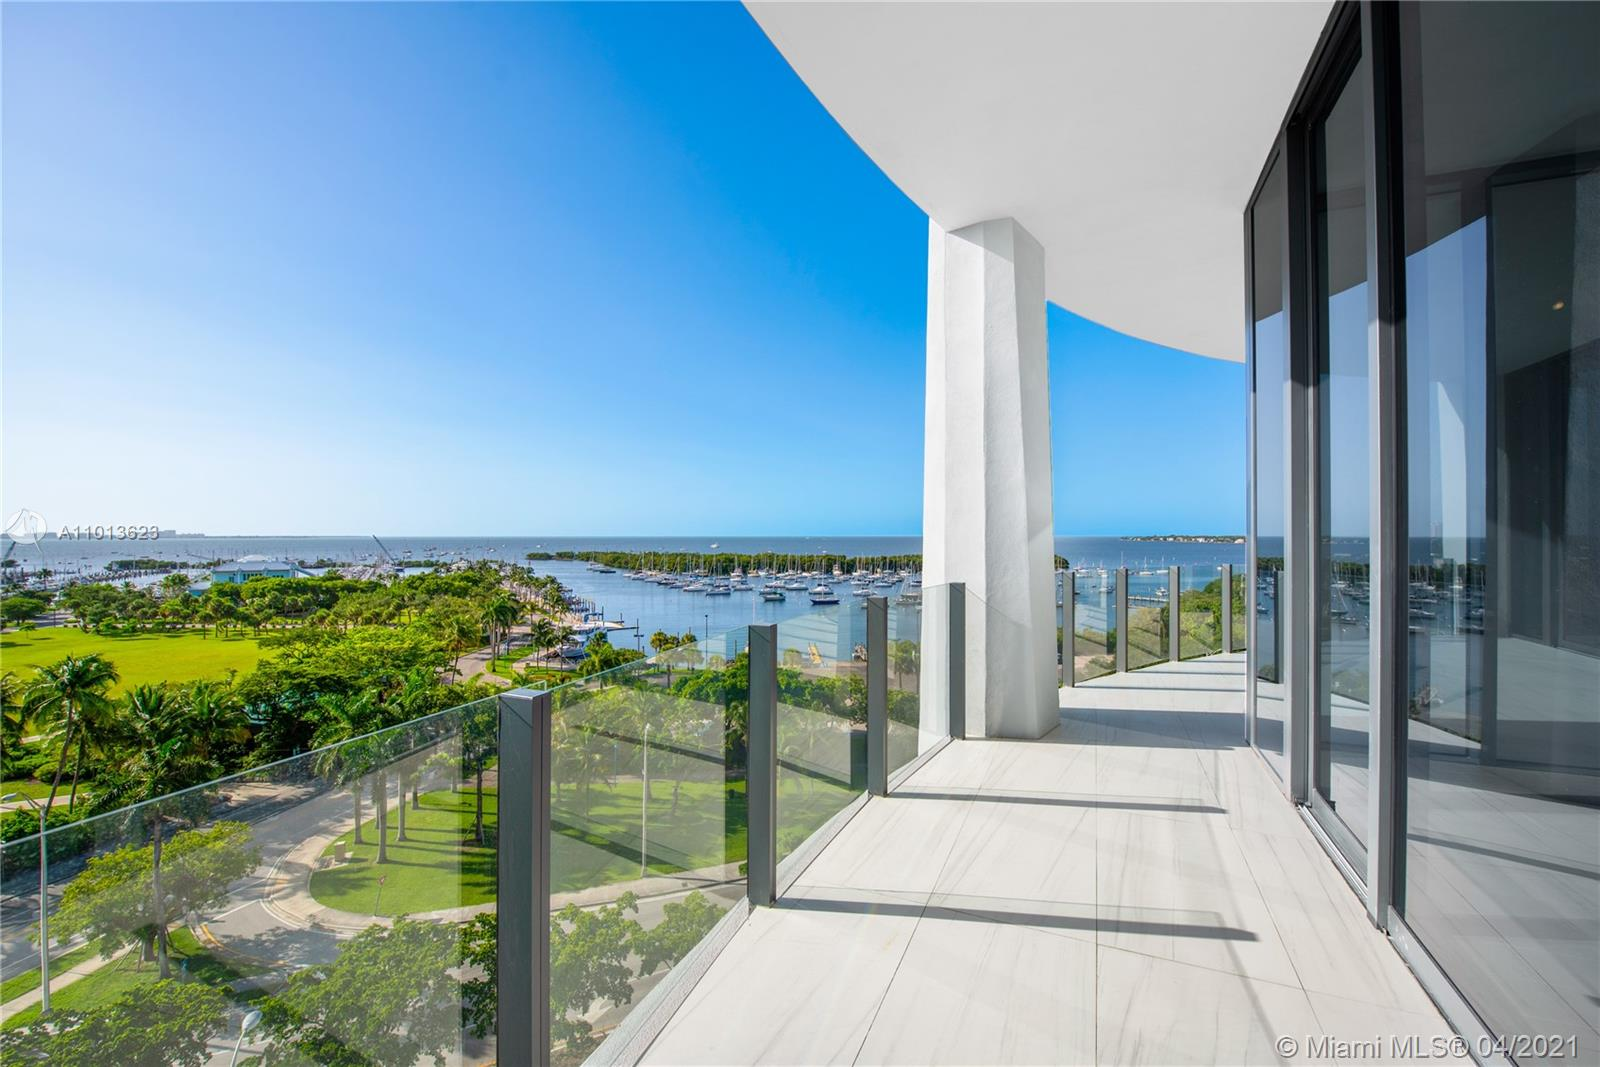 Located in the sophisticated One Park Grove, rarely available A line. Four bedrooms, Five and a Half bathrooms corner residence. This spacious 3,592 SF home offers an oversized balcony with spectacular views of Biscayne Bay. Soaring 12ft ceilings with wrap-around floor-to-ceiling glass. Your private elevator opens to your own foyer. The kitchen, designed by William Sofield, includes Italian cabinetry with marble counter-tops, an eat-in kitchen, Wolf and Sub-Zero appliances. Designed by Pritzker Prize-winning Architect Rem Koolhaas/OMA, Park Grove is the epitome of luxury living. Amenities include: valet, pool deck offering incredible views, 5-acres of lush, landscaped grounds, signature spa, children's play areas, 28-seat screening room, and more.